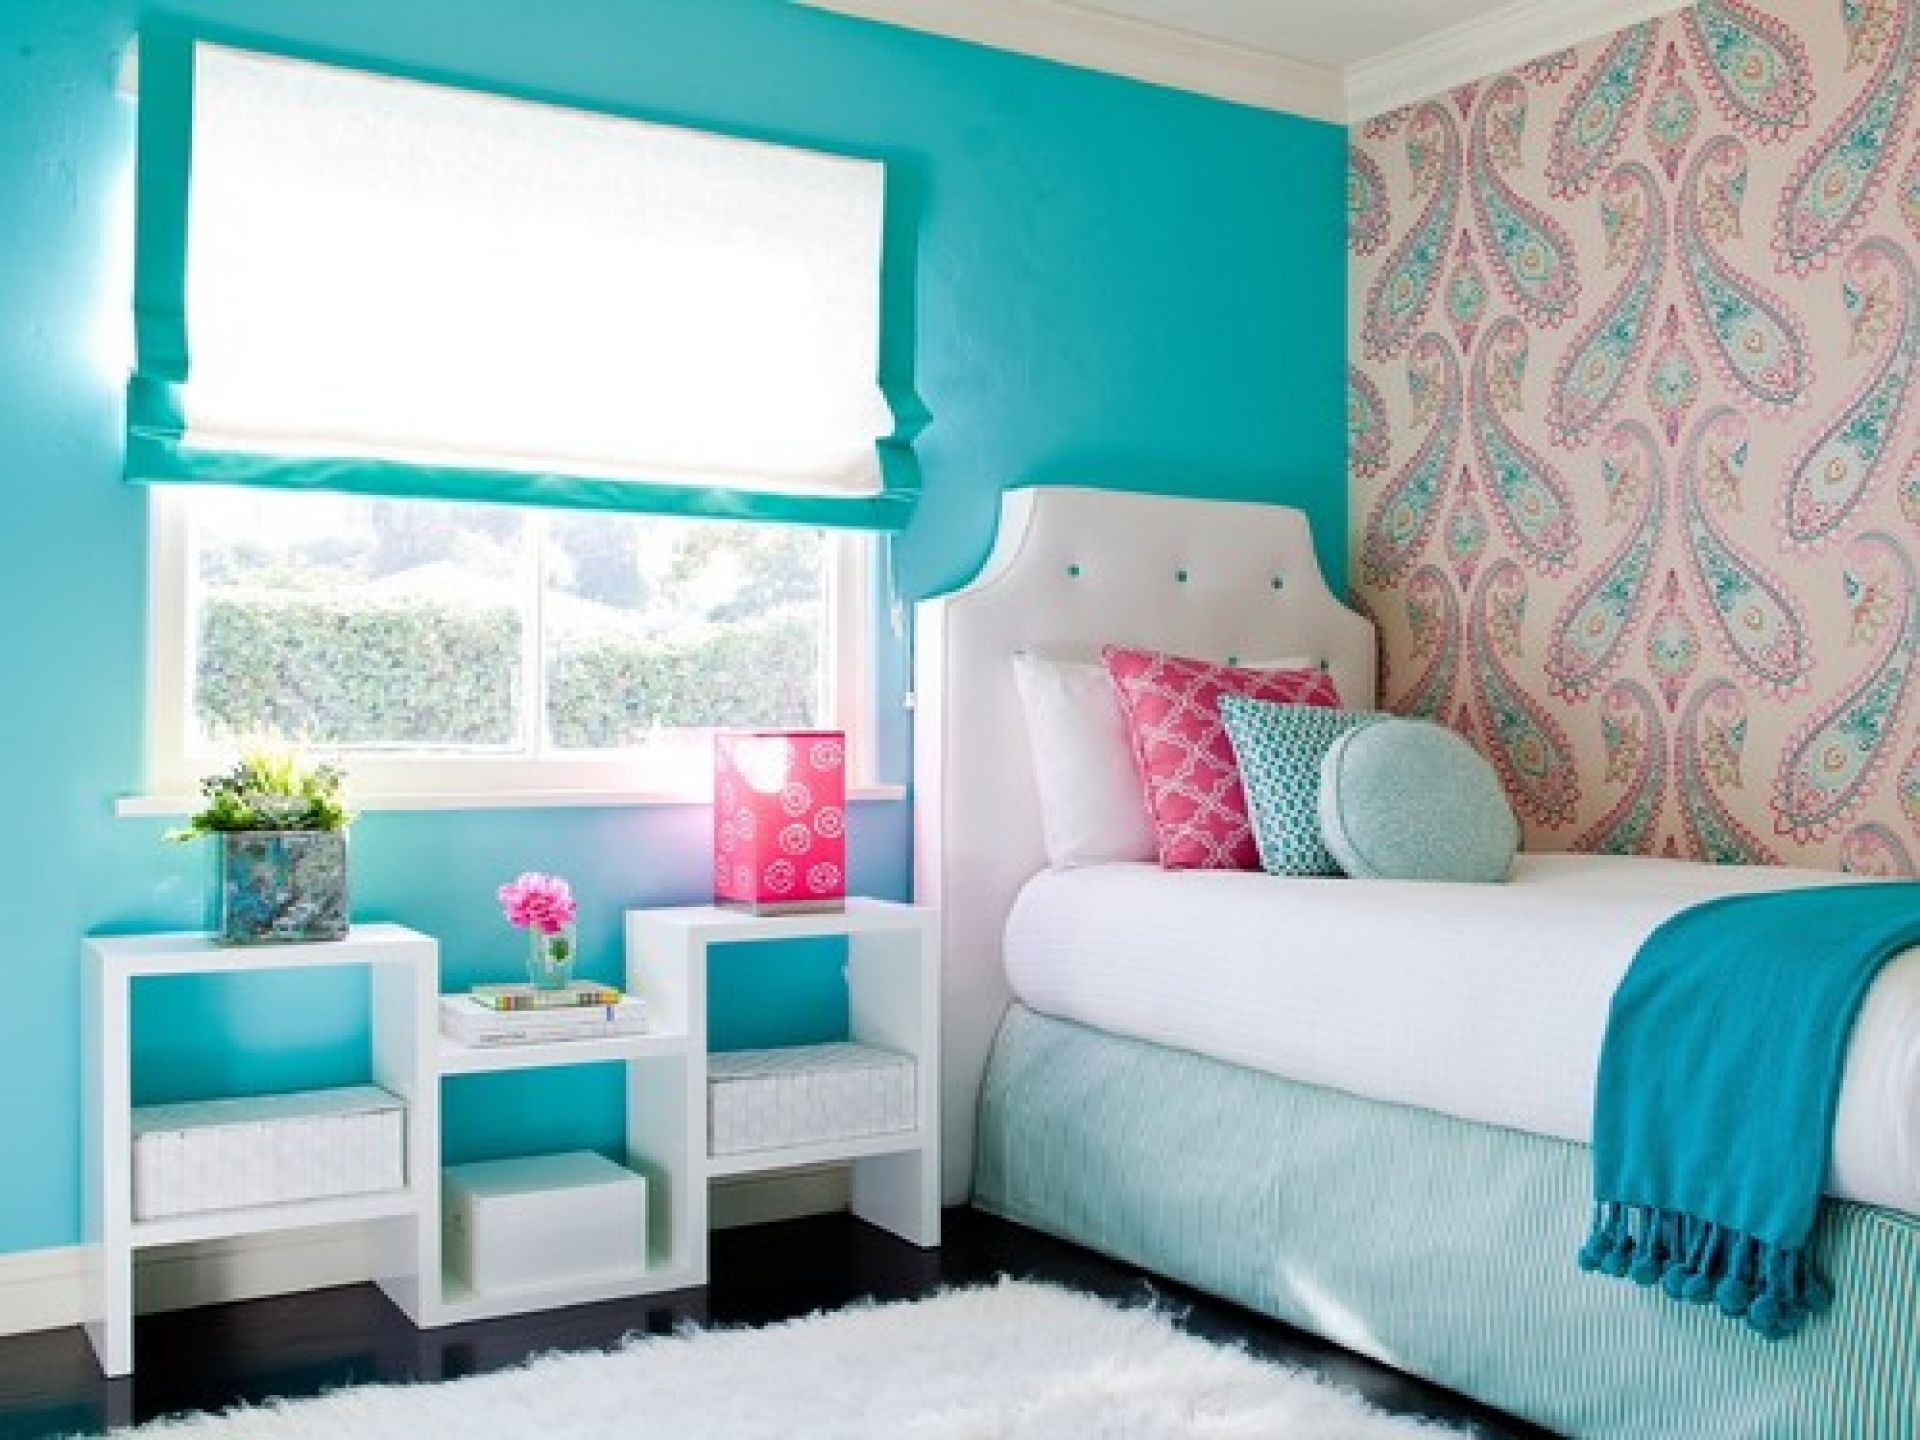 Unique bedroom wall paint ideas - Simple Design Comfy Room Colors Teenage Girl Bedroom Wall Paint Ideas Colors For Bedrooms For Teenage